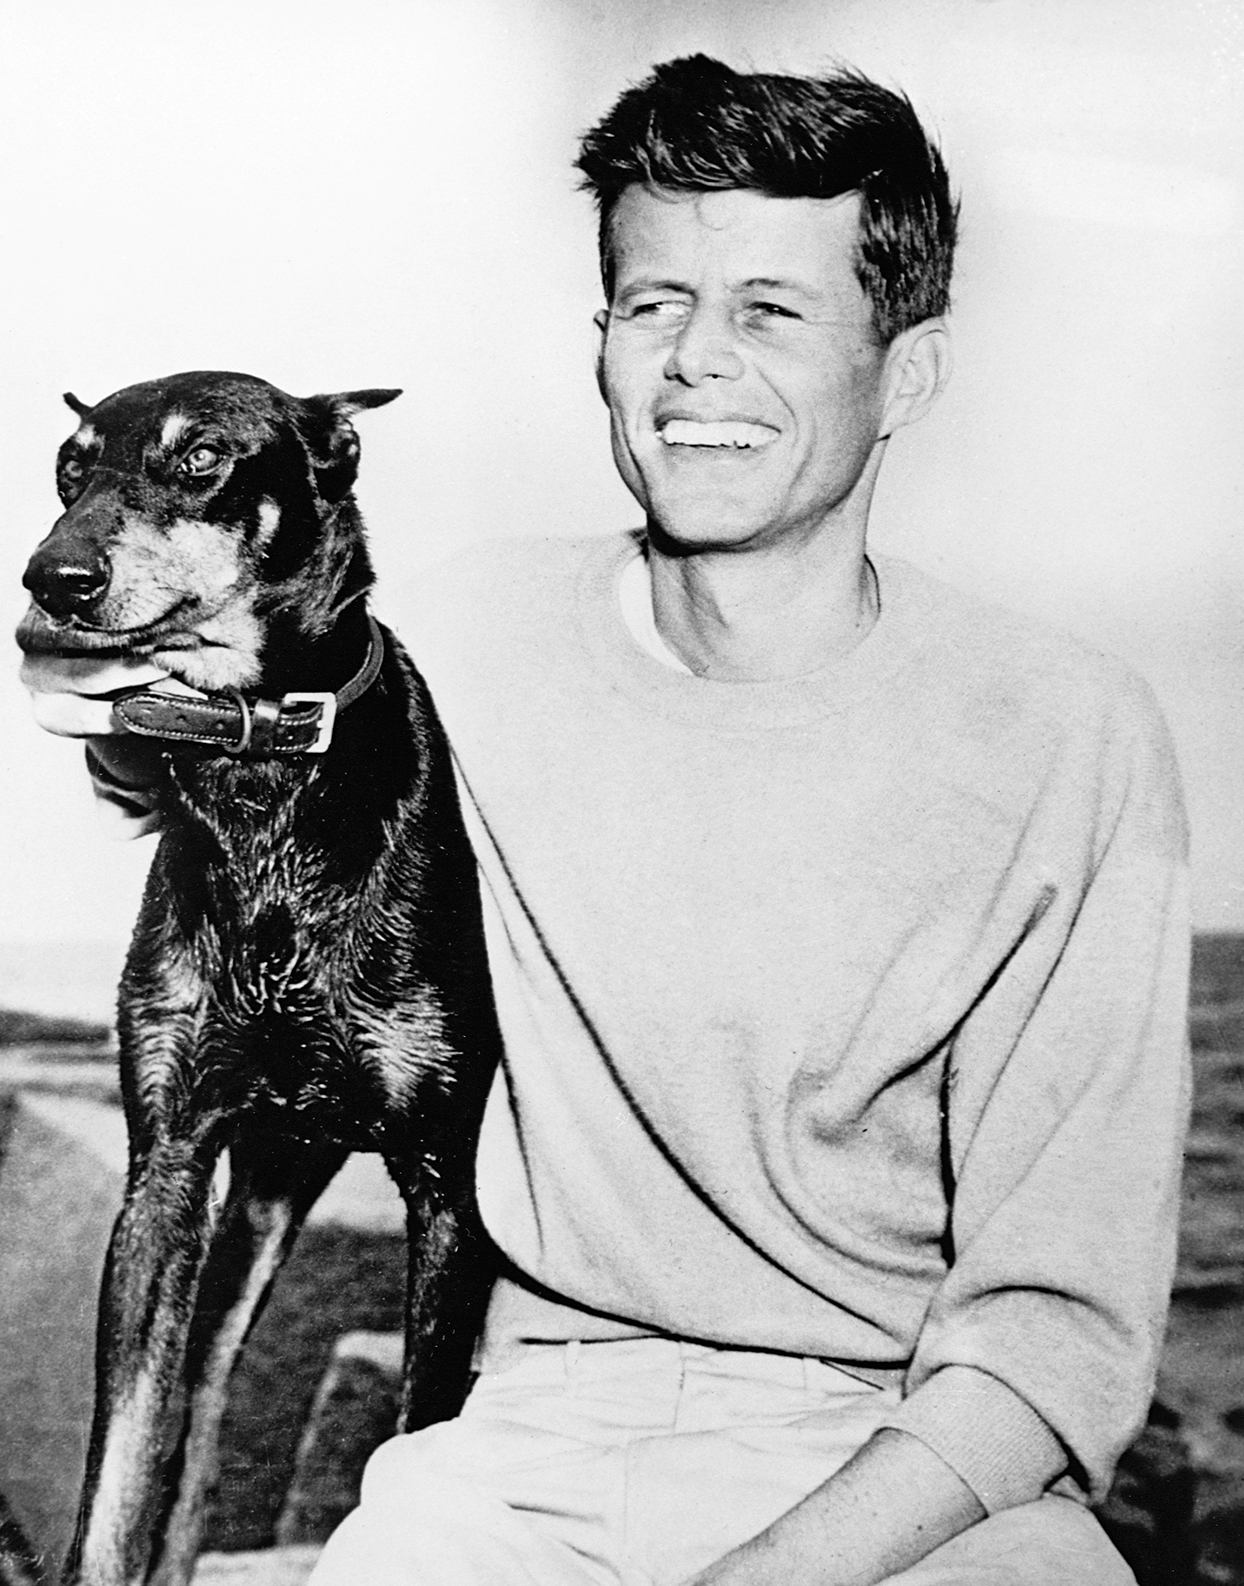 Black and white photo of John F. Kennedy embracing Doberman Pinscher dog while smiling